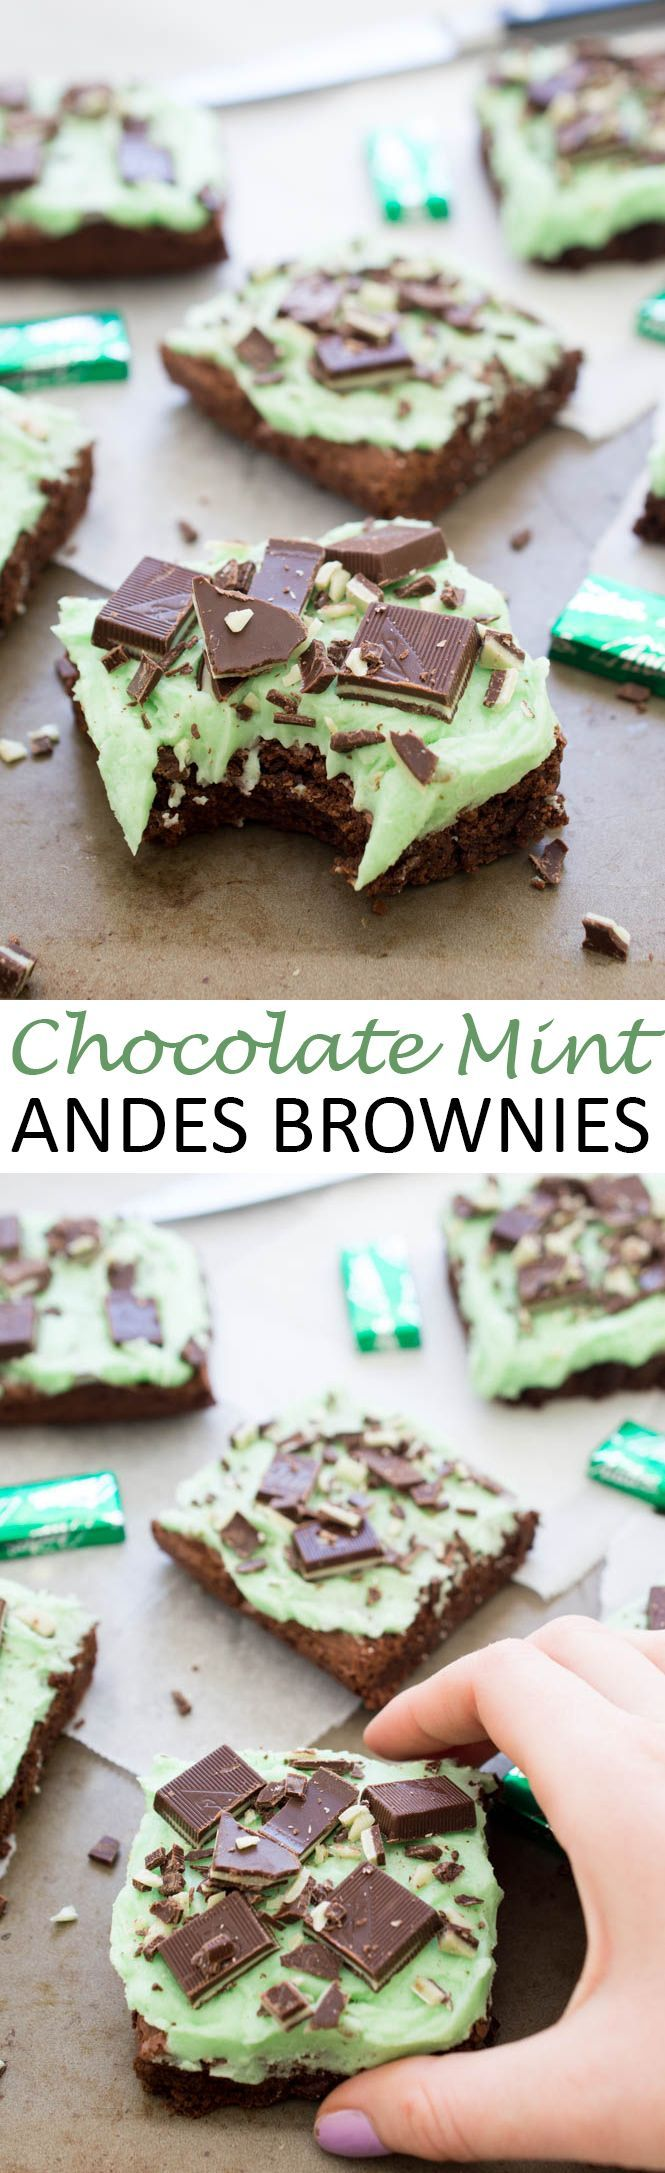 Ultra Fudgey Chocolate Mint Andes Brownies topped with a thick layer of Peppermint Buttercream Frosting. Perfect for St Patrick's Day! | chefsavvy.com